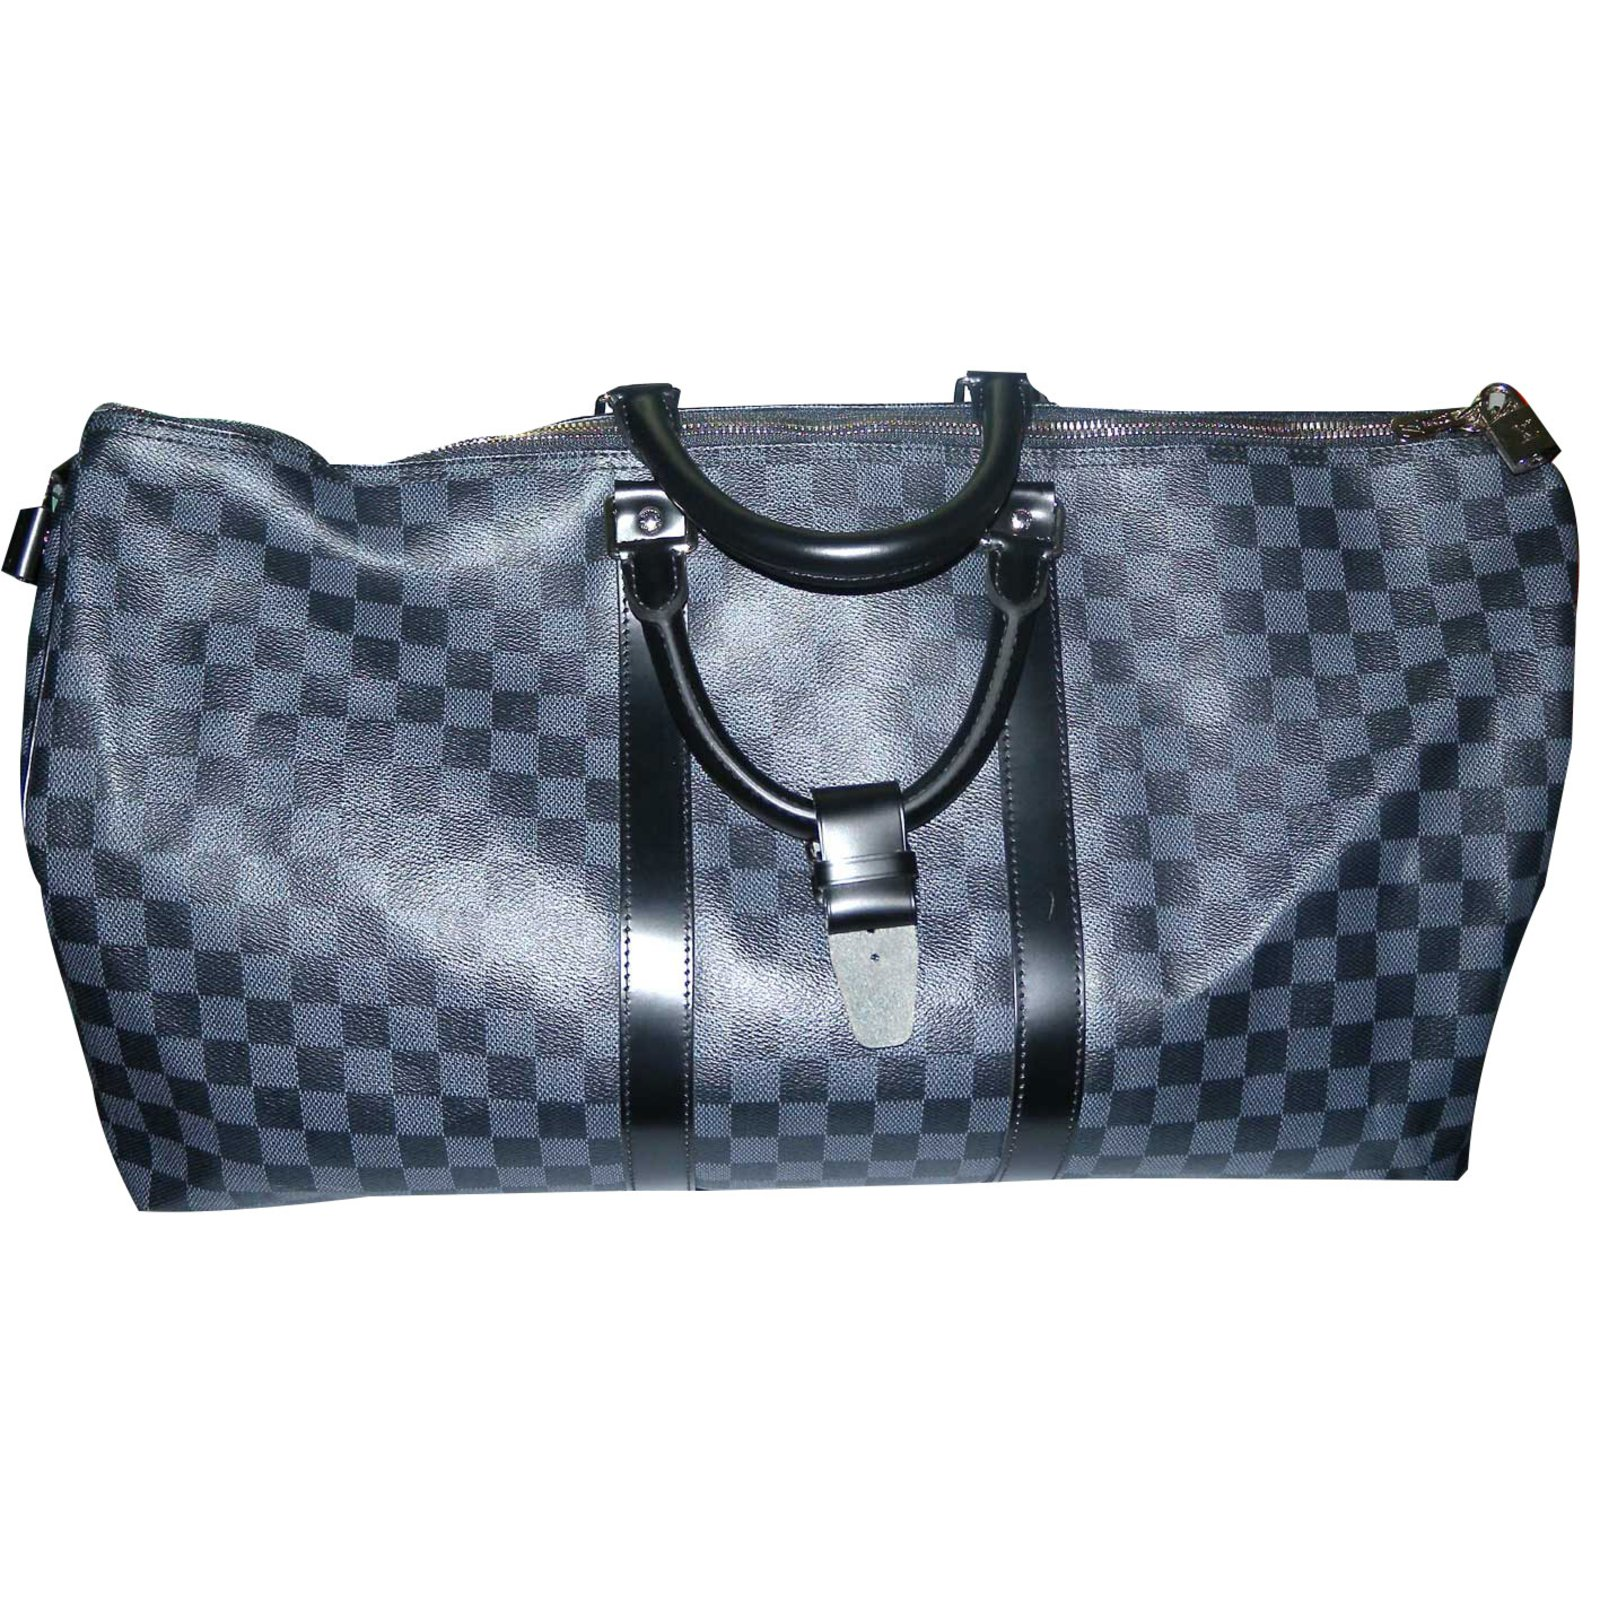 sacs de voyage louis vuitton keepall 55 cm toile damier graphite cuir toile noir gris. Black Bedroom Furniture Sets. Home Design Ideas